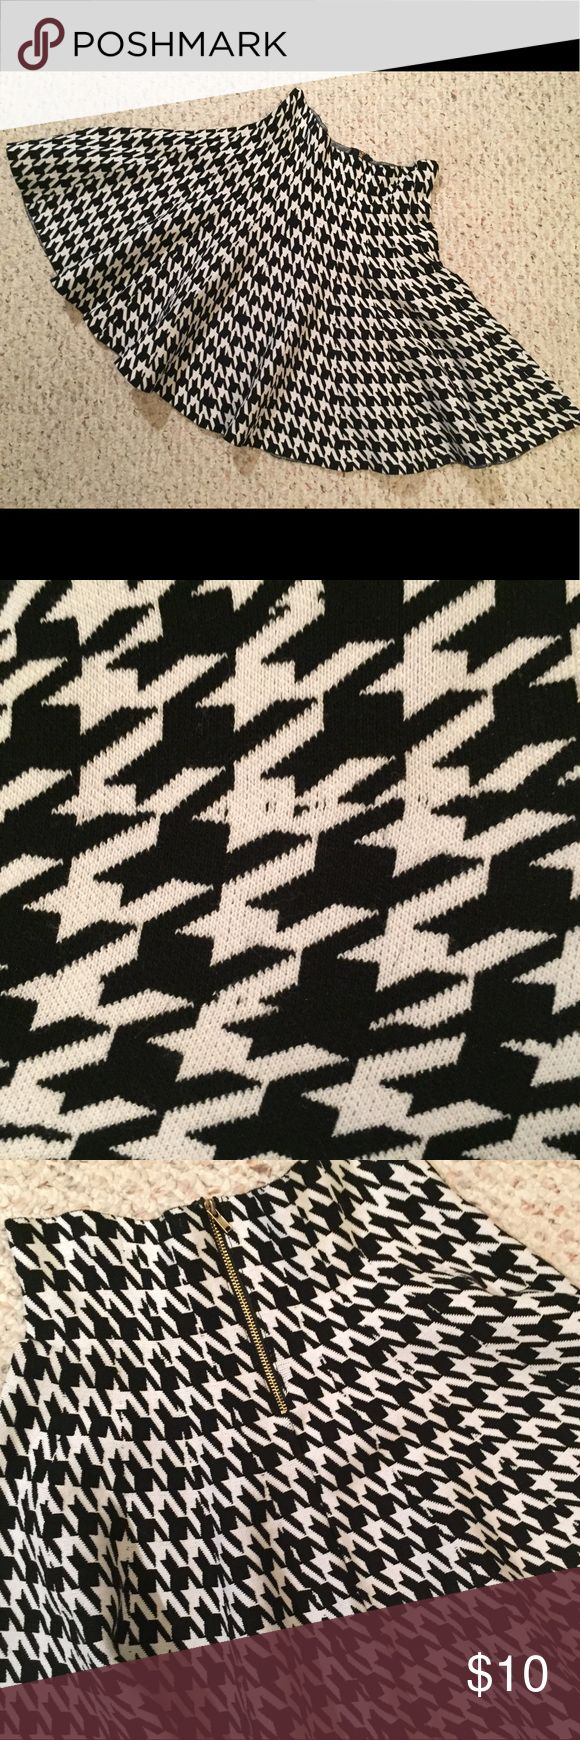 Circle skirt Stretchy, black and white. Never been worn Skirts Circle & Skater